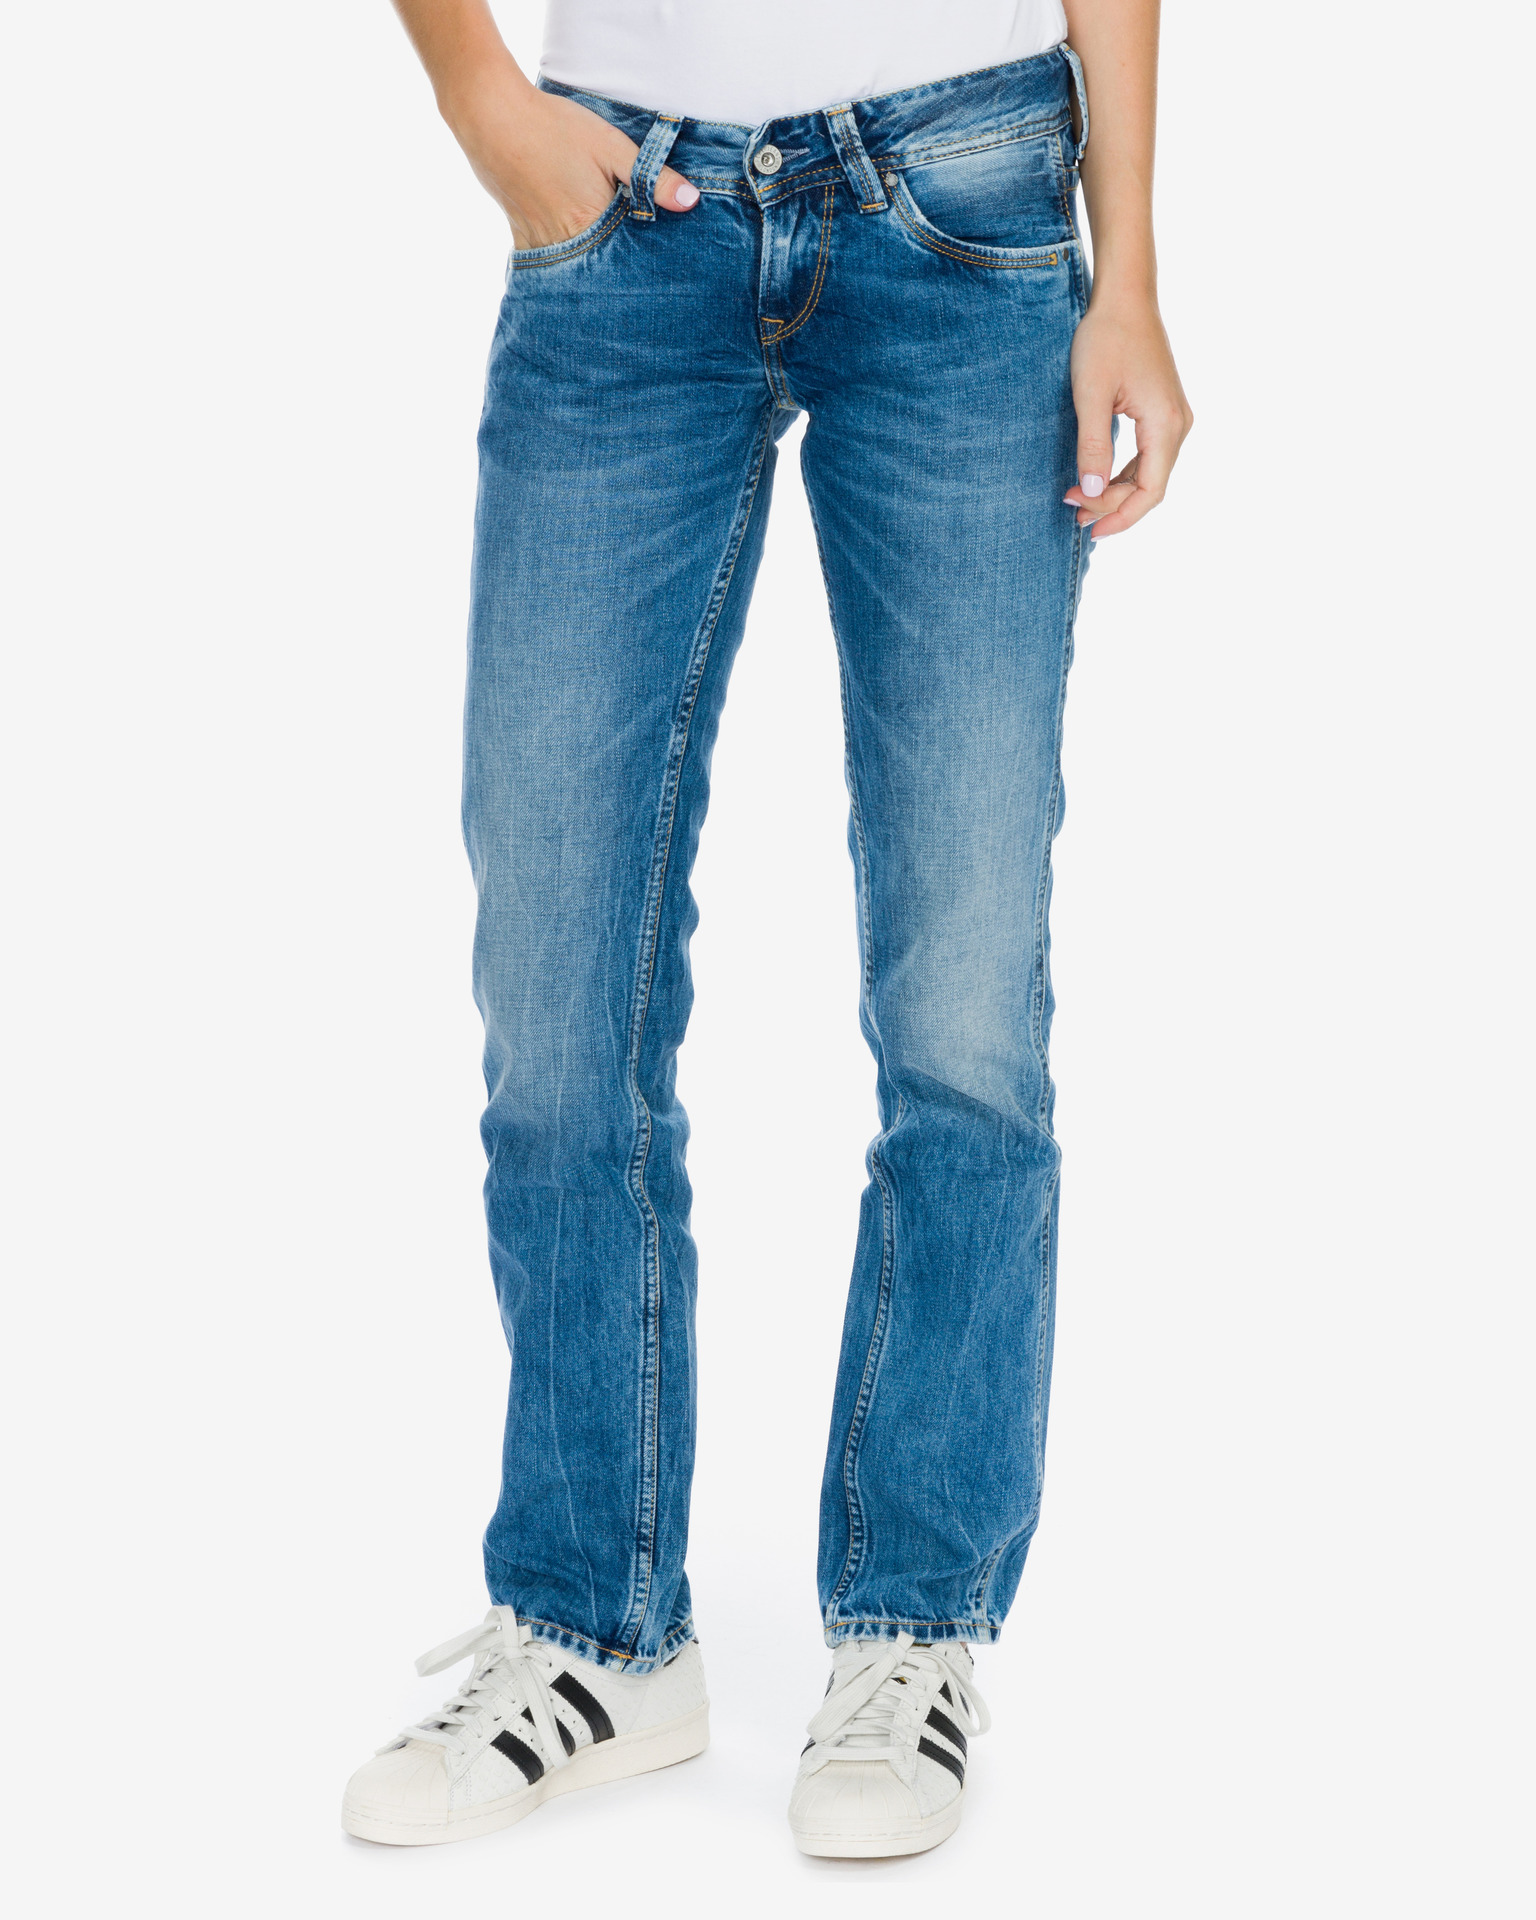 OLYMPIA JEAN Pepe Jeans